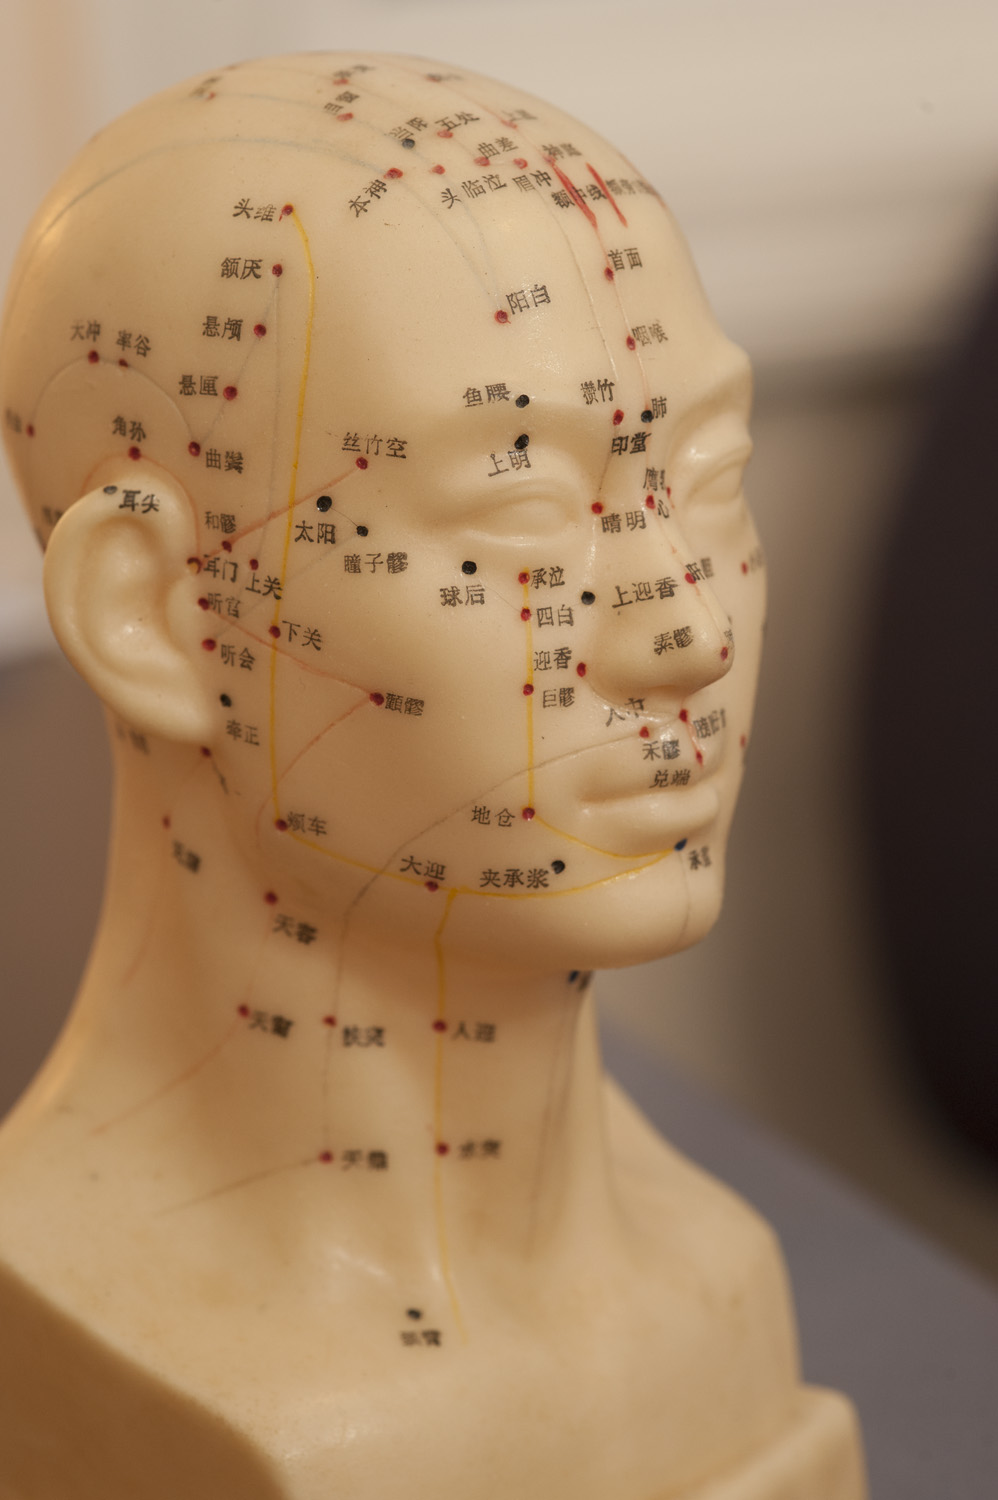 Nancy Graham, of Spring Lotus, in Rhode Island, examines a patient before performing acupuncture